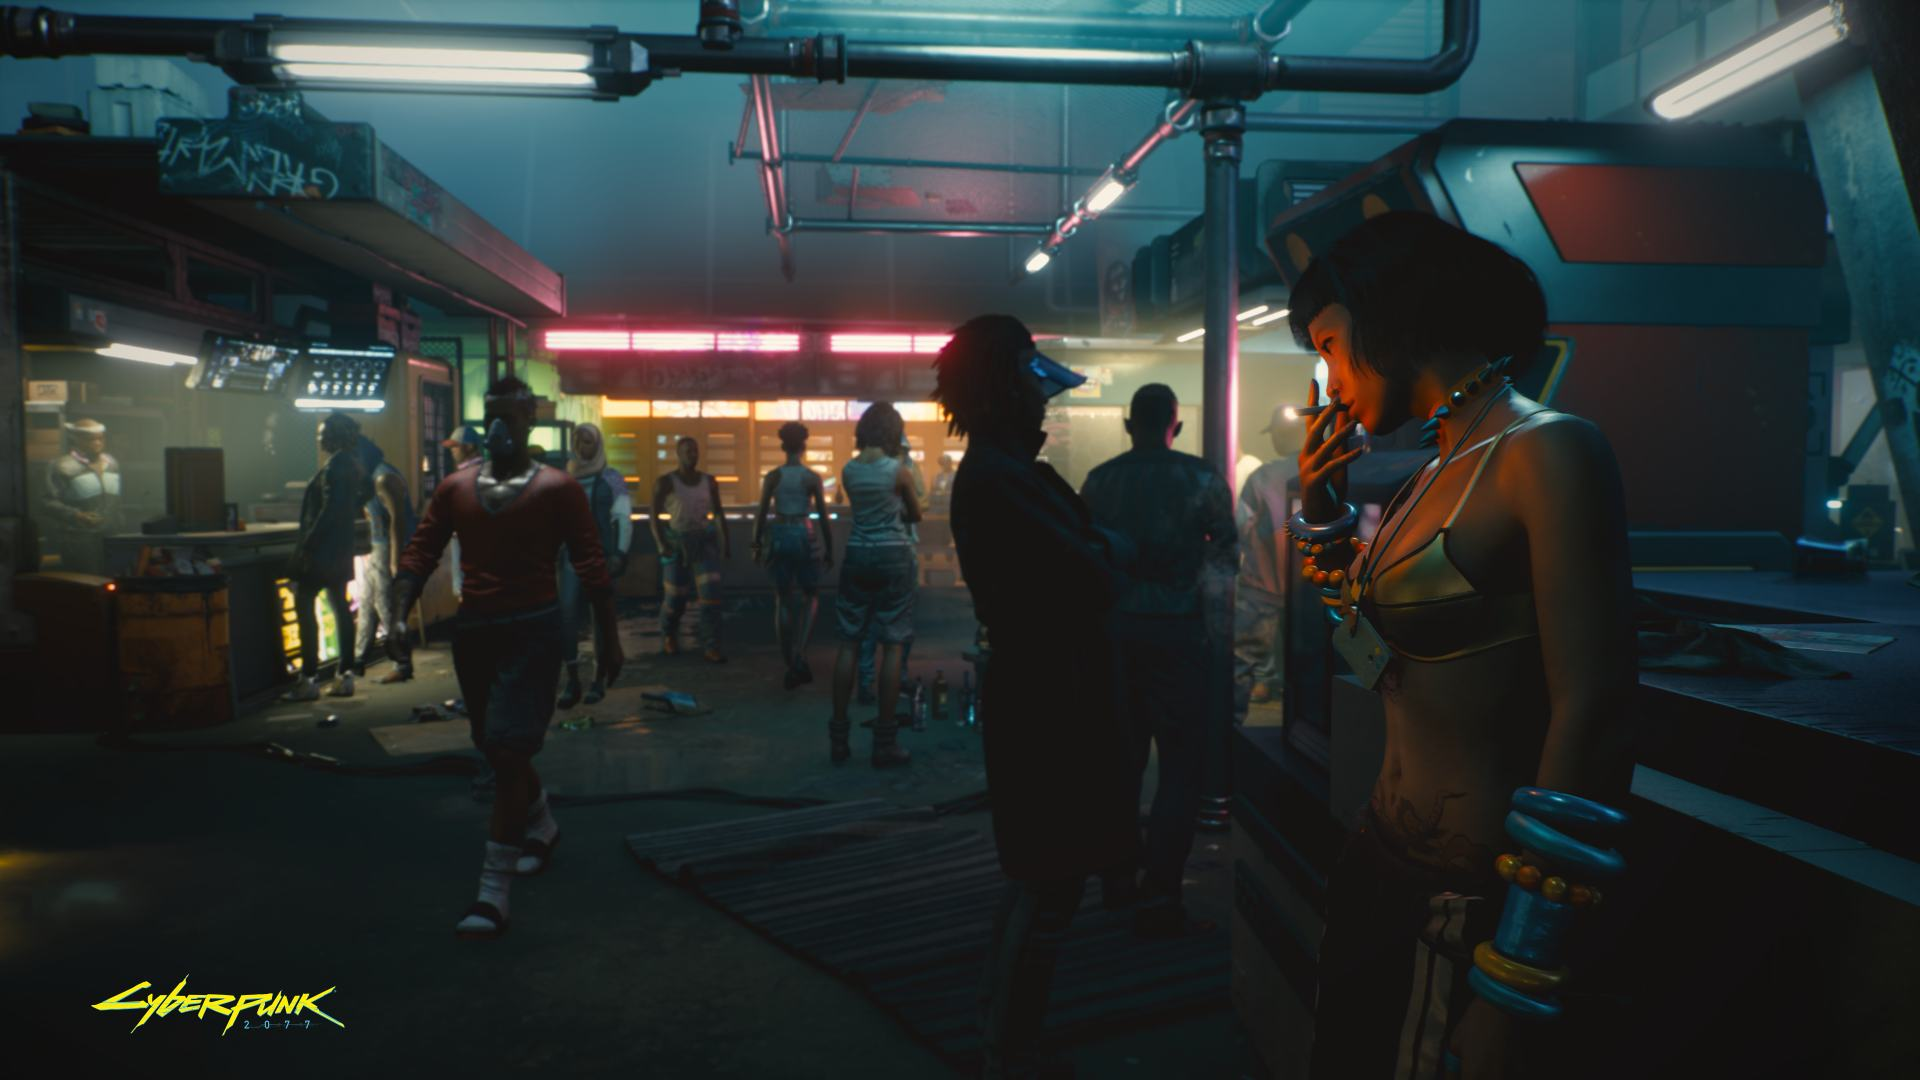 Cyberpunk2077-Passing_the_time_RGB-en.jp